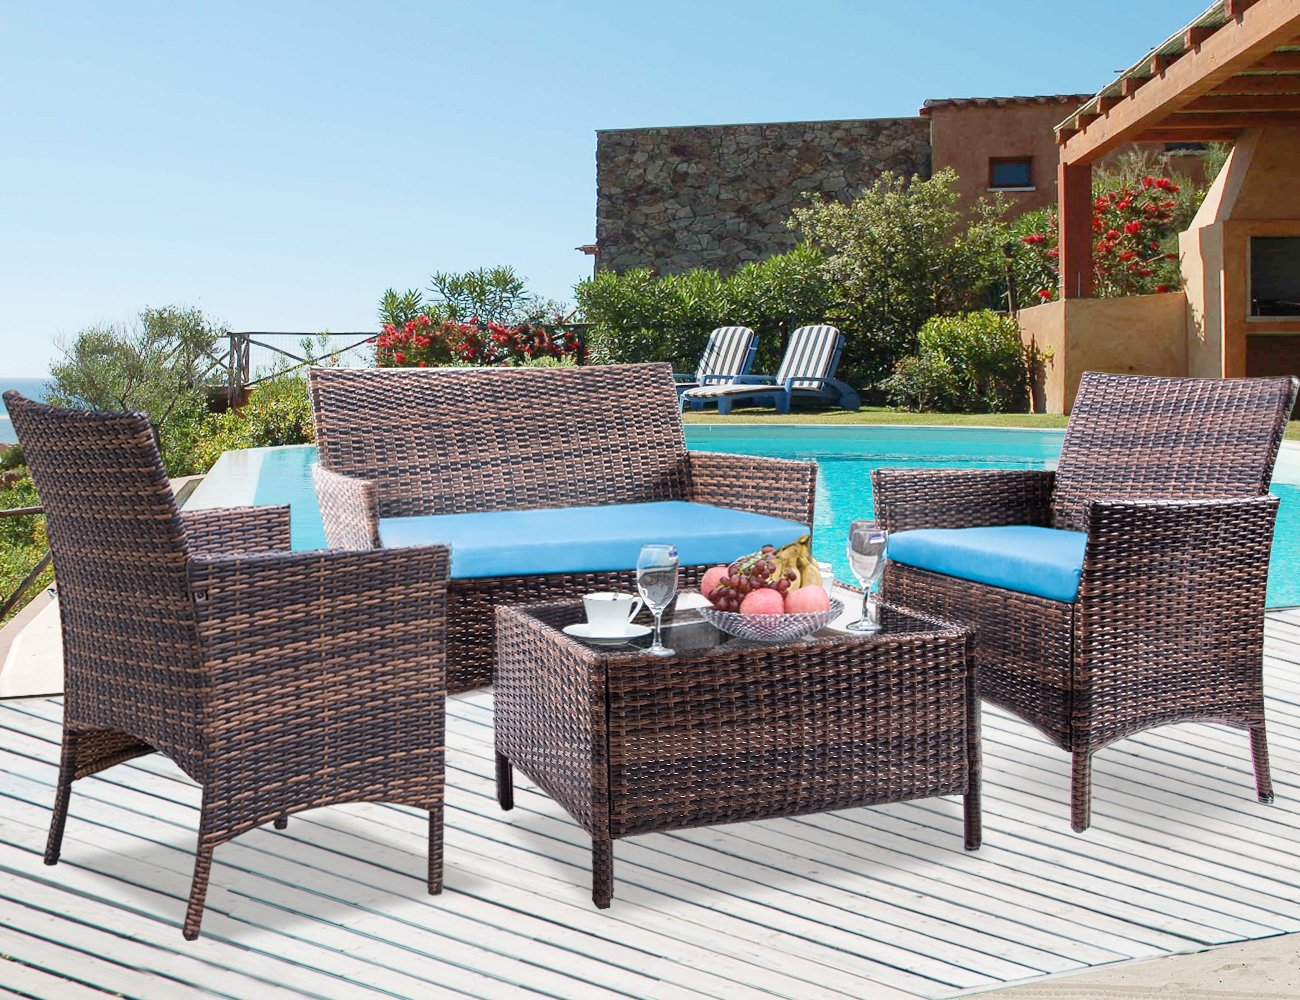 Leisure Zone 4 PCS Patio Furniture Outdoor Garden Conversation Wicker Sofa Set, Green Cushions - Set includes: 2 x Armchair; 1 x Double sofa; 1 x Coffee table; 3 x Cushions Idea for patio, porch, poolside or garden,No maintenance required, will not crack, split, rot, chip, fade or deteriorate Strong steel frame with all weather PE rattan wicker, durable for outdoor use - patio-furniture, patio, conversation-sets - 81lXAdunMfL -